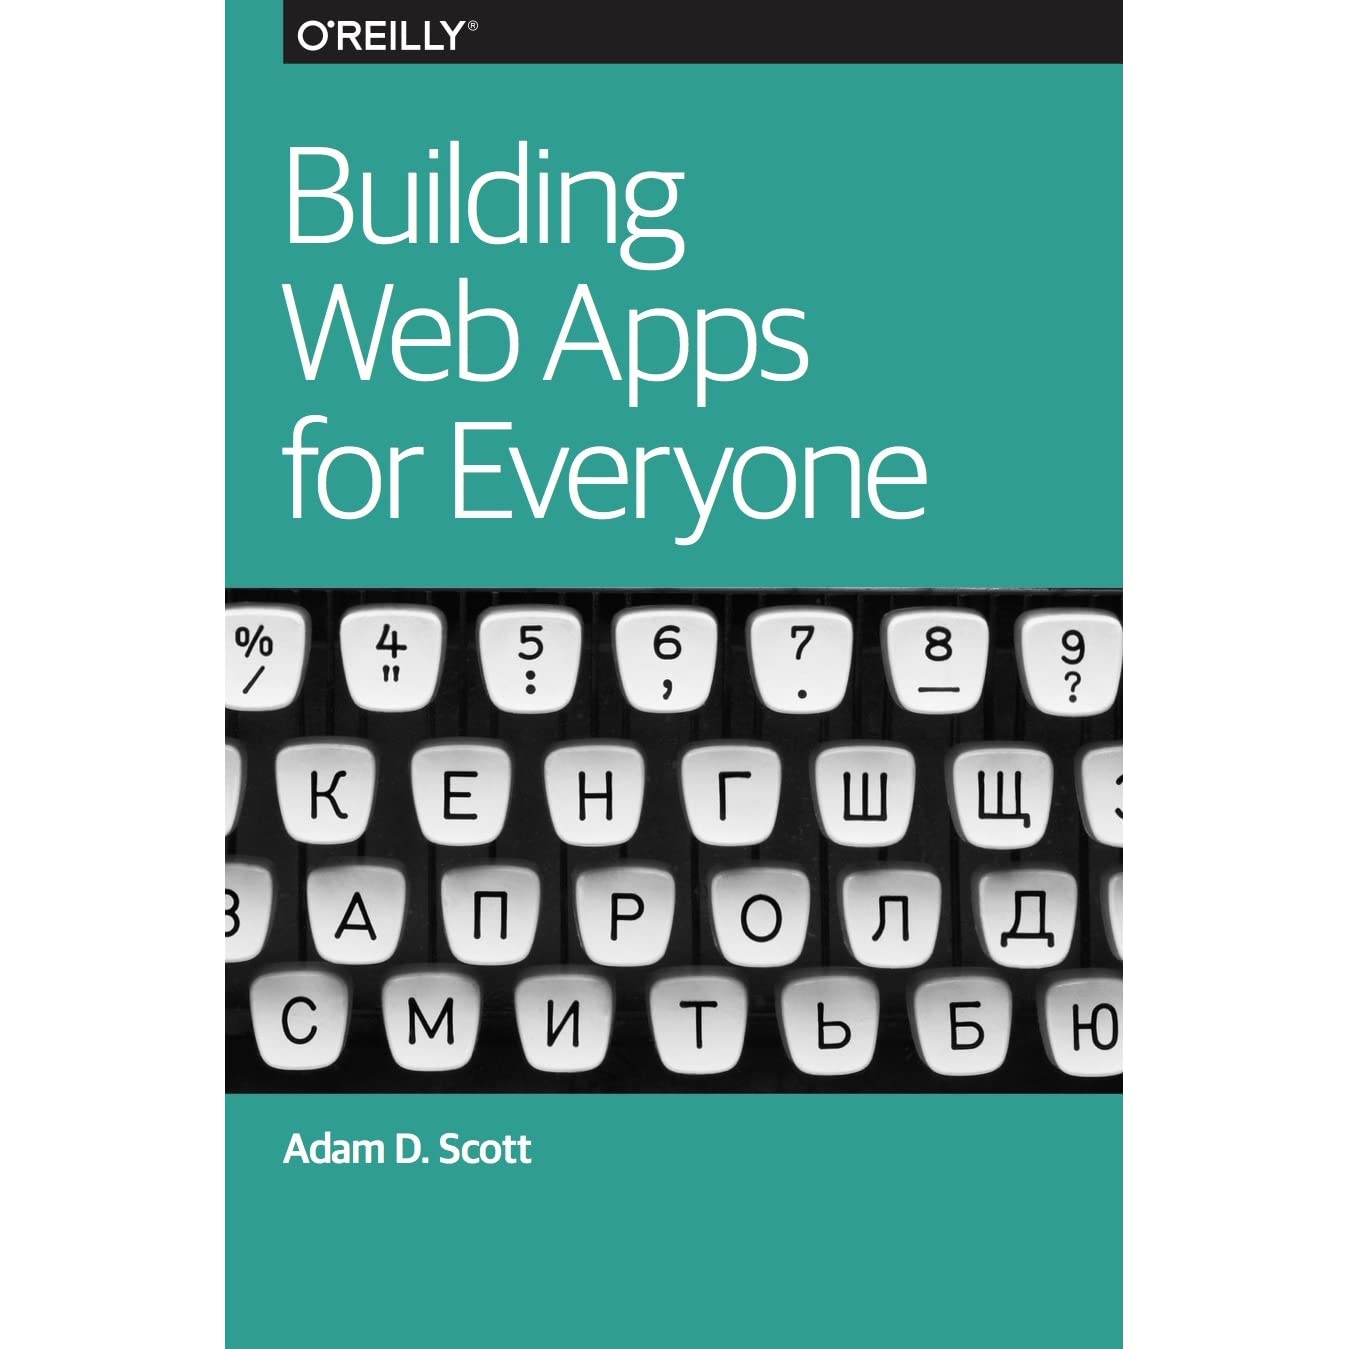 Building Web Apps for Everyone, 2016 by Adam D. Scott